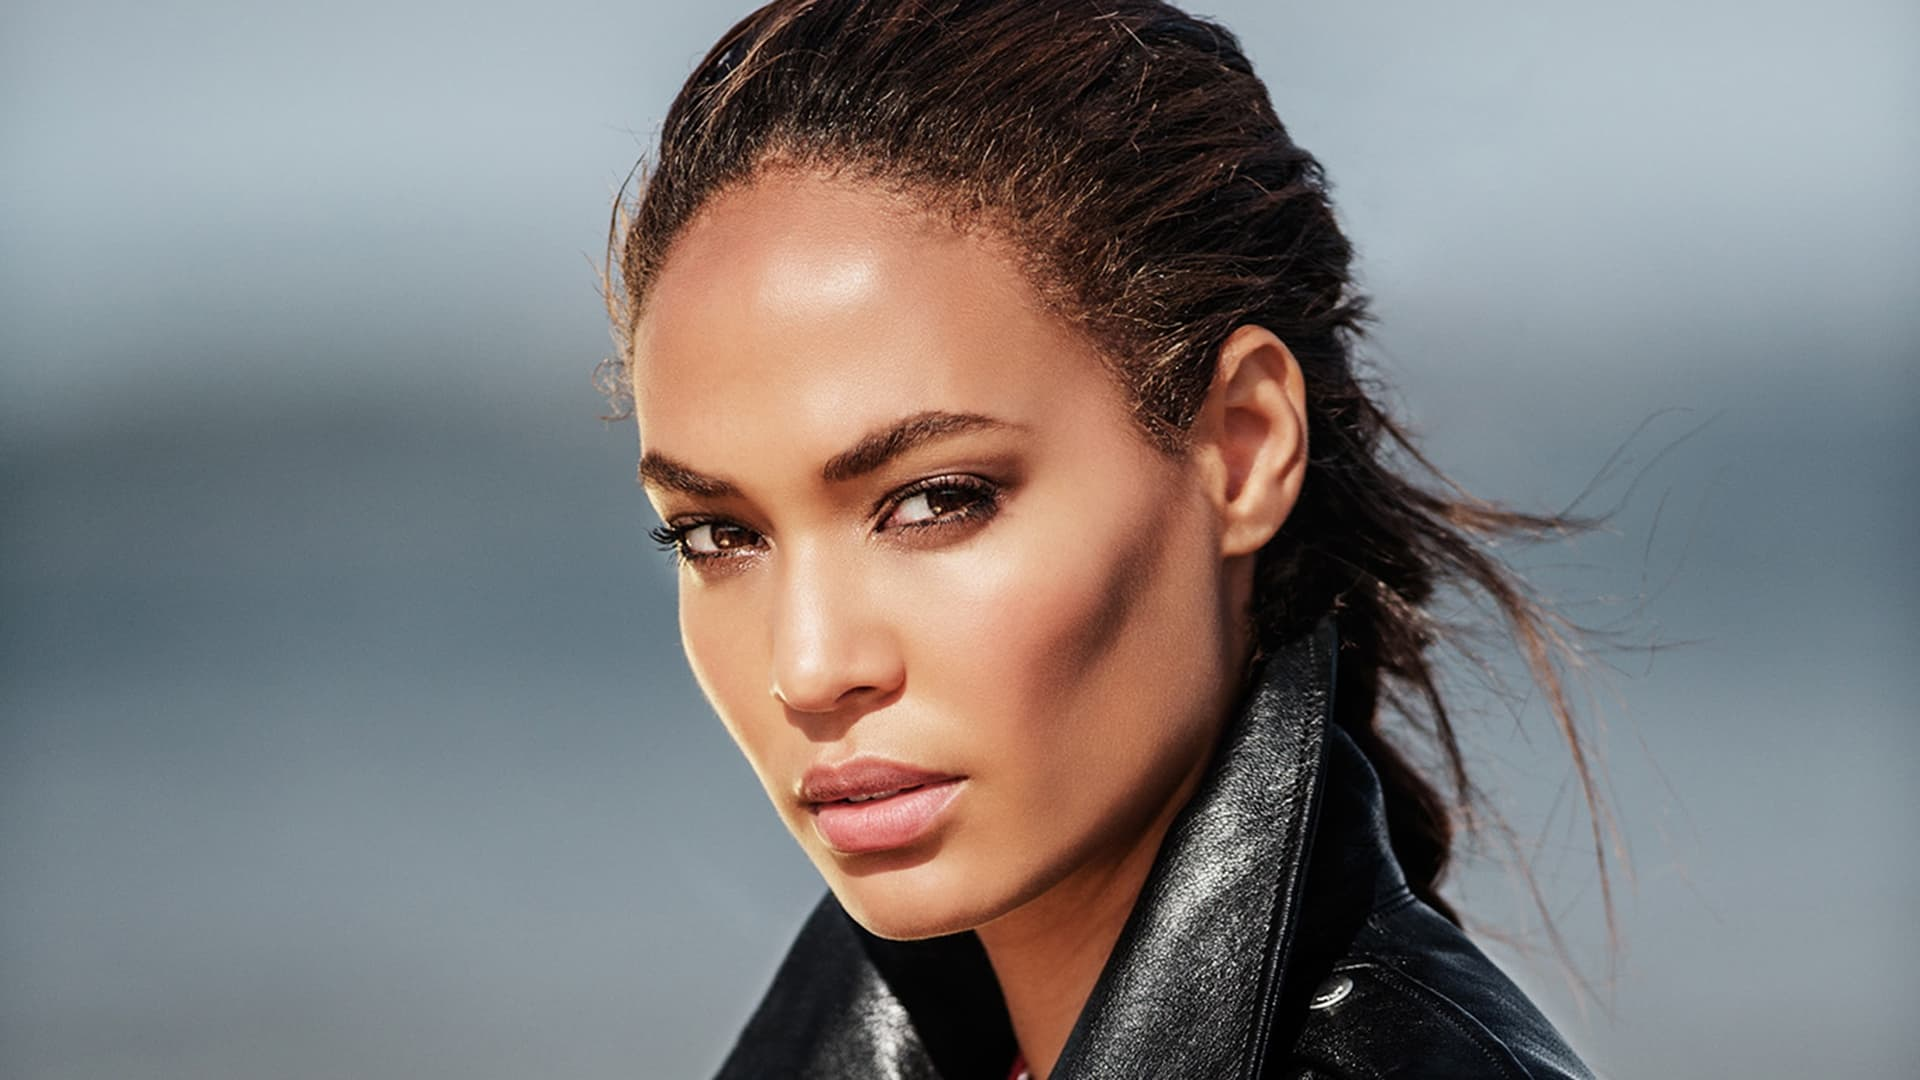 Joan smalls wallpapers hd high quality resolution download - Walpepar photos ...